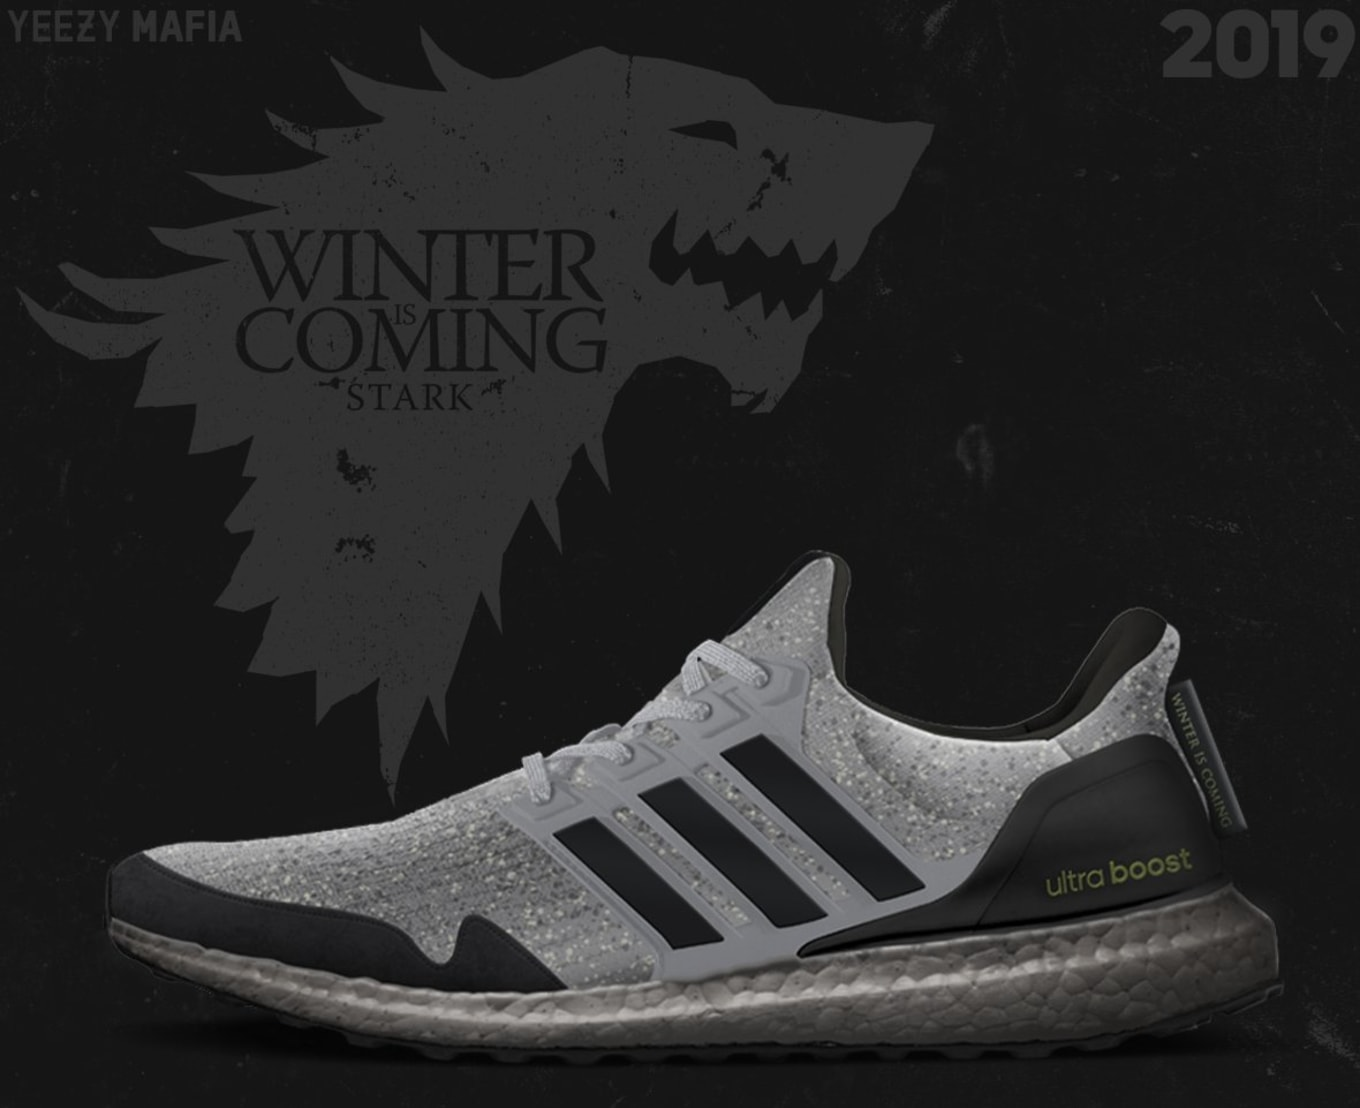 5d2d828afbac7 Game of Thrones x Adidas Ultra Boost Sneaker Collaboration 2019 ...